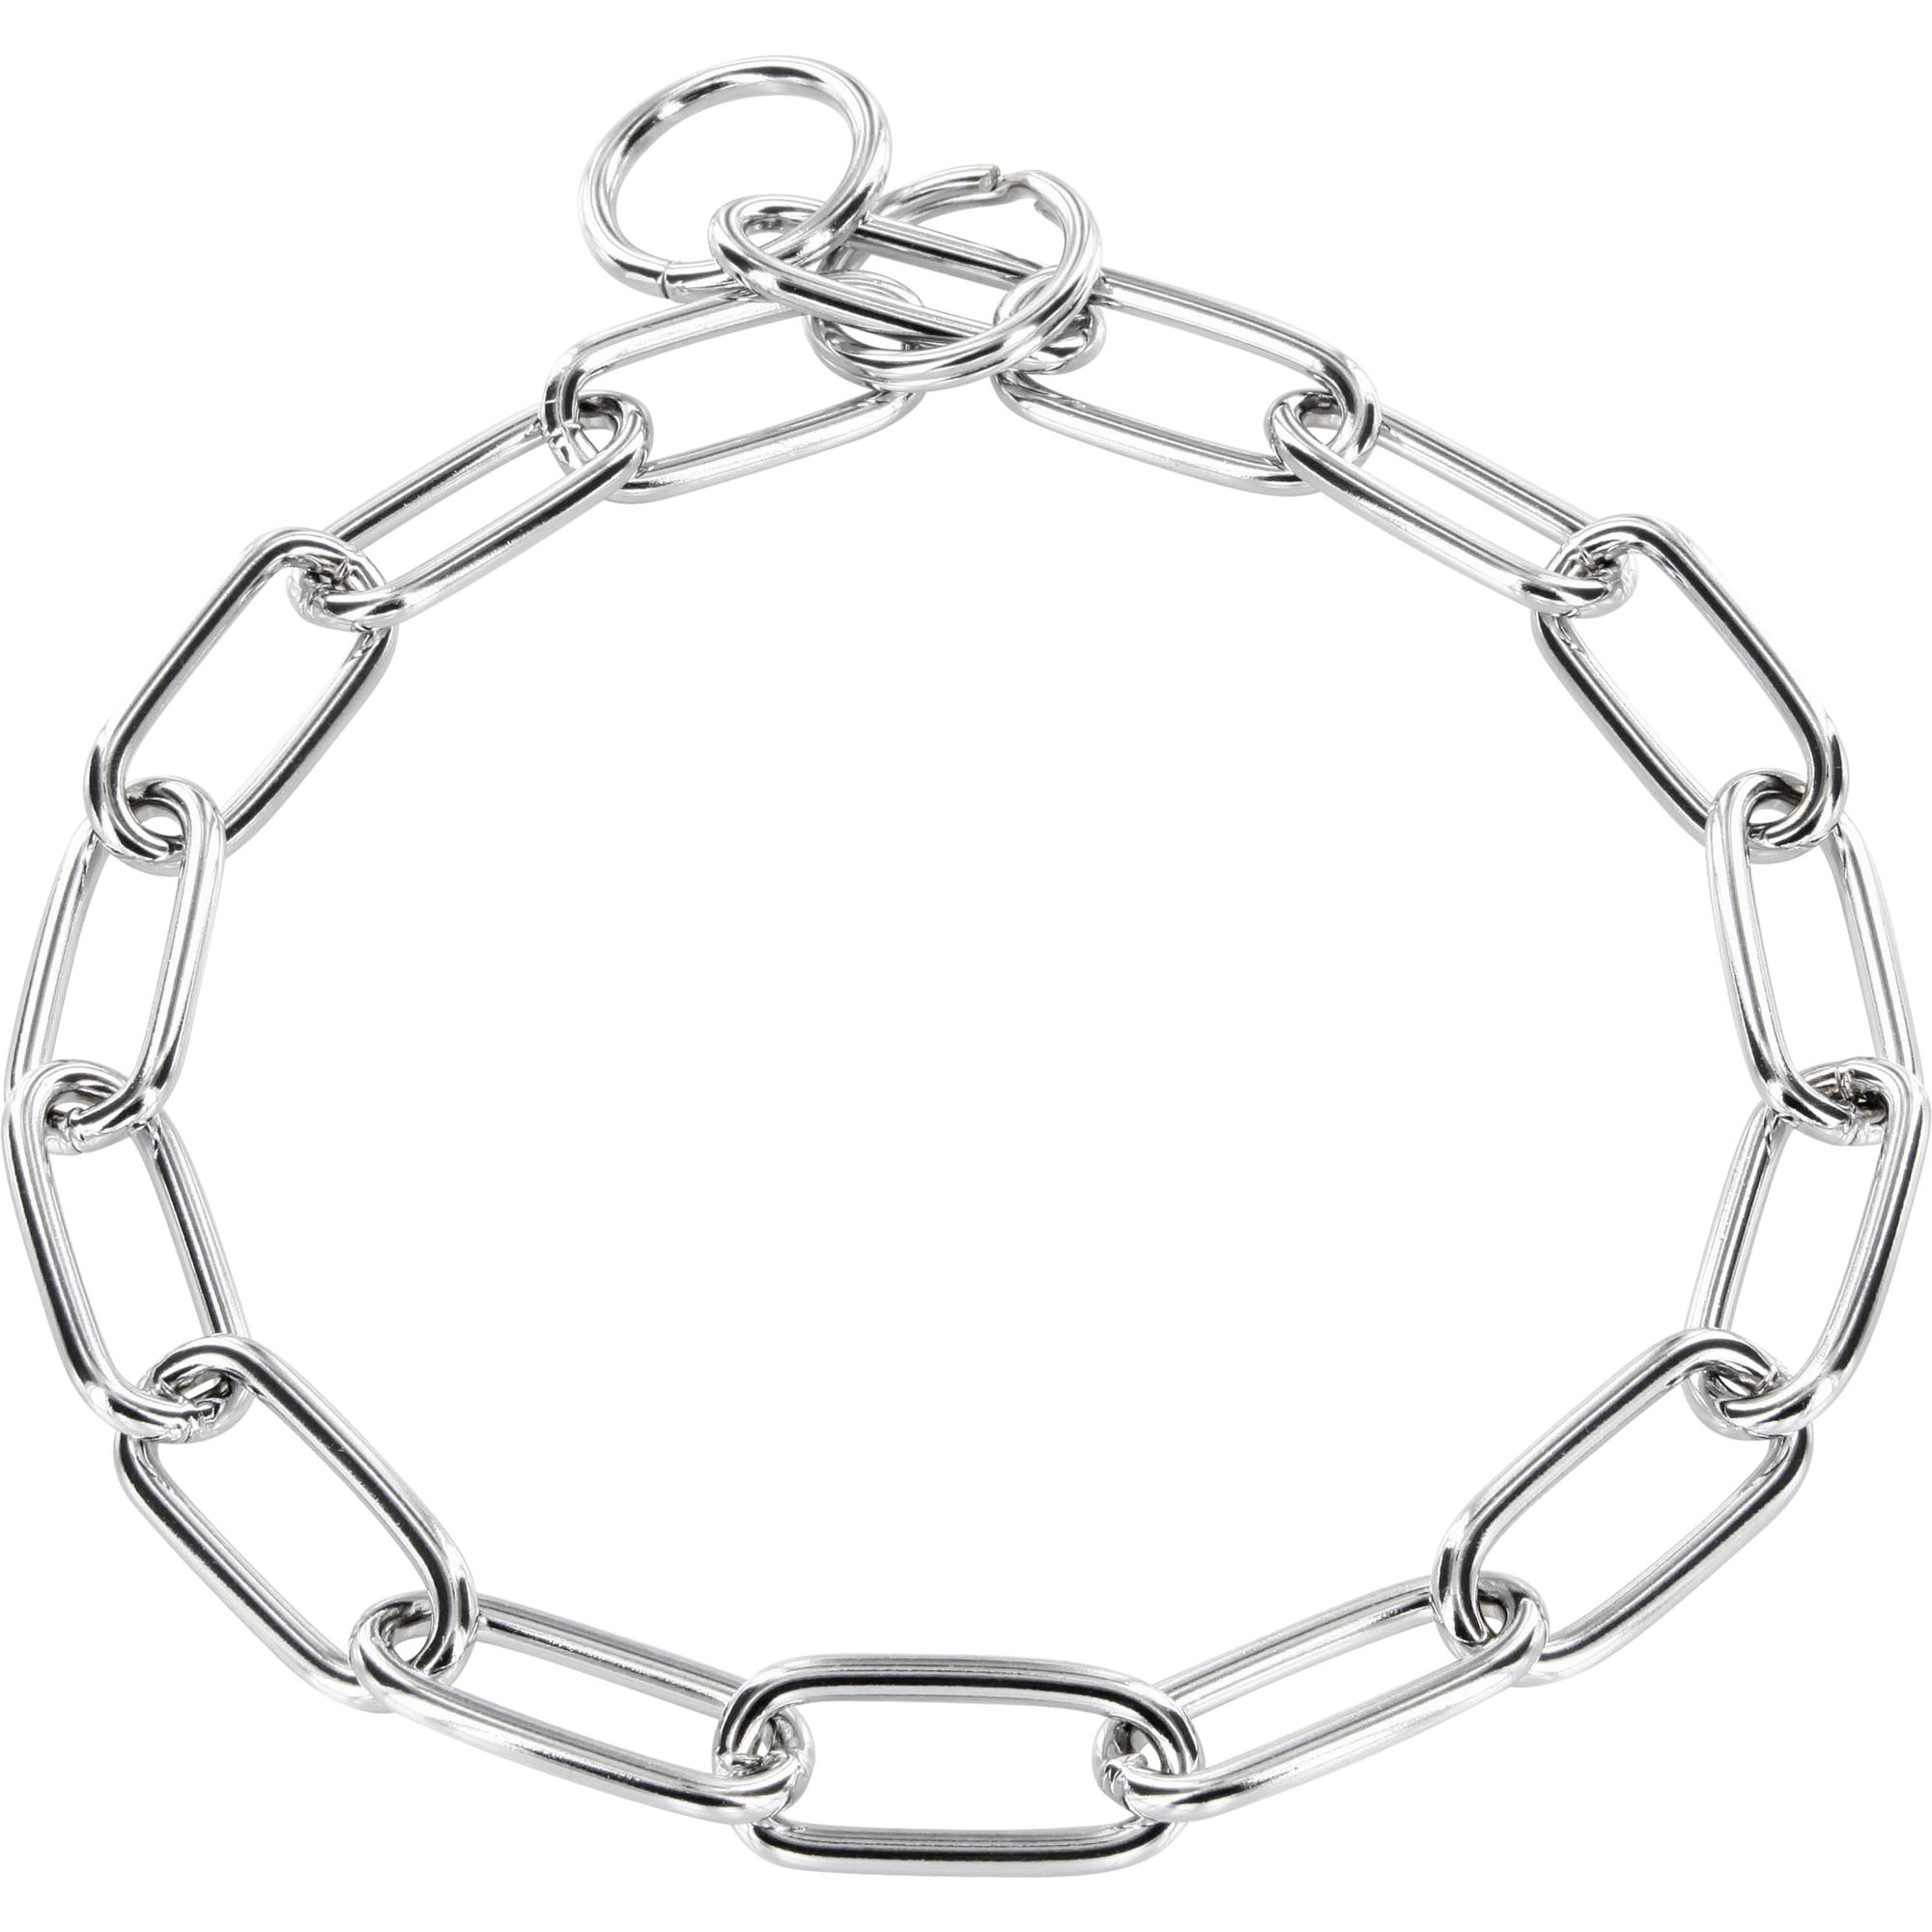 Collar Long Links With Key Ring Steel Chrome Plated 4